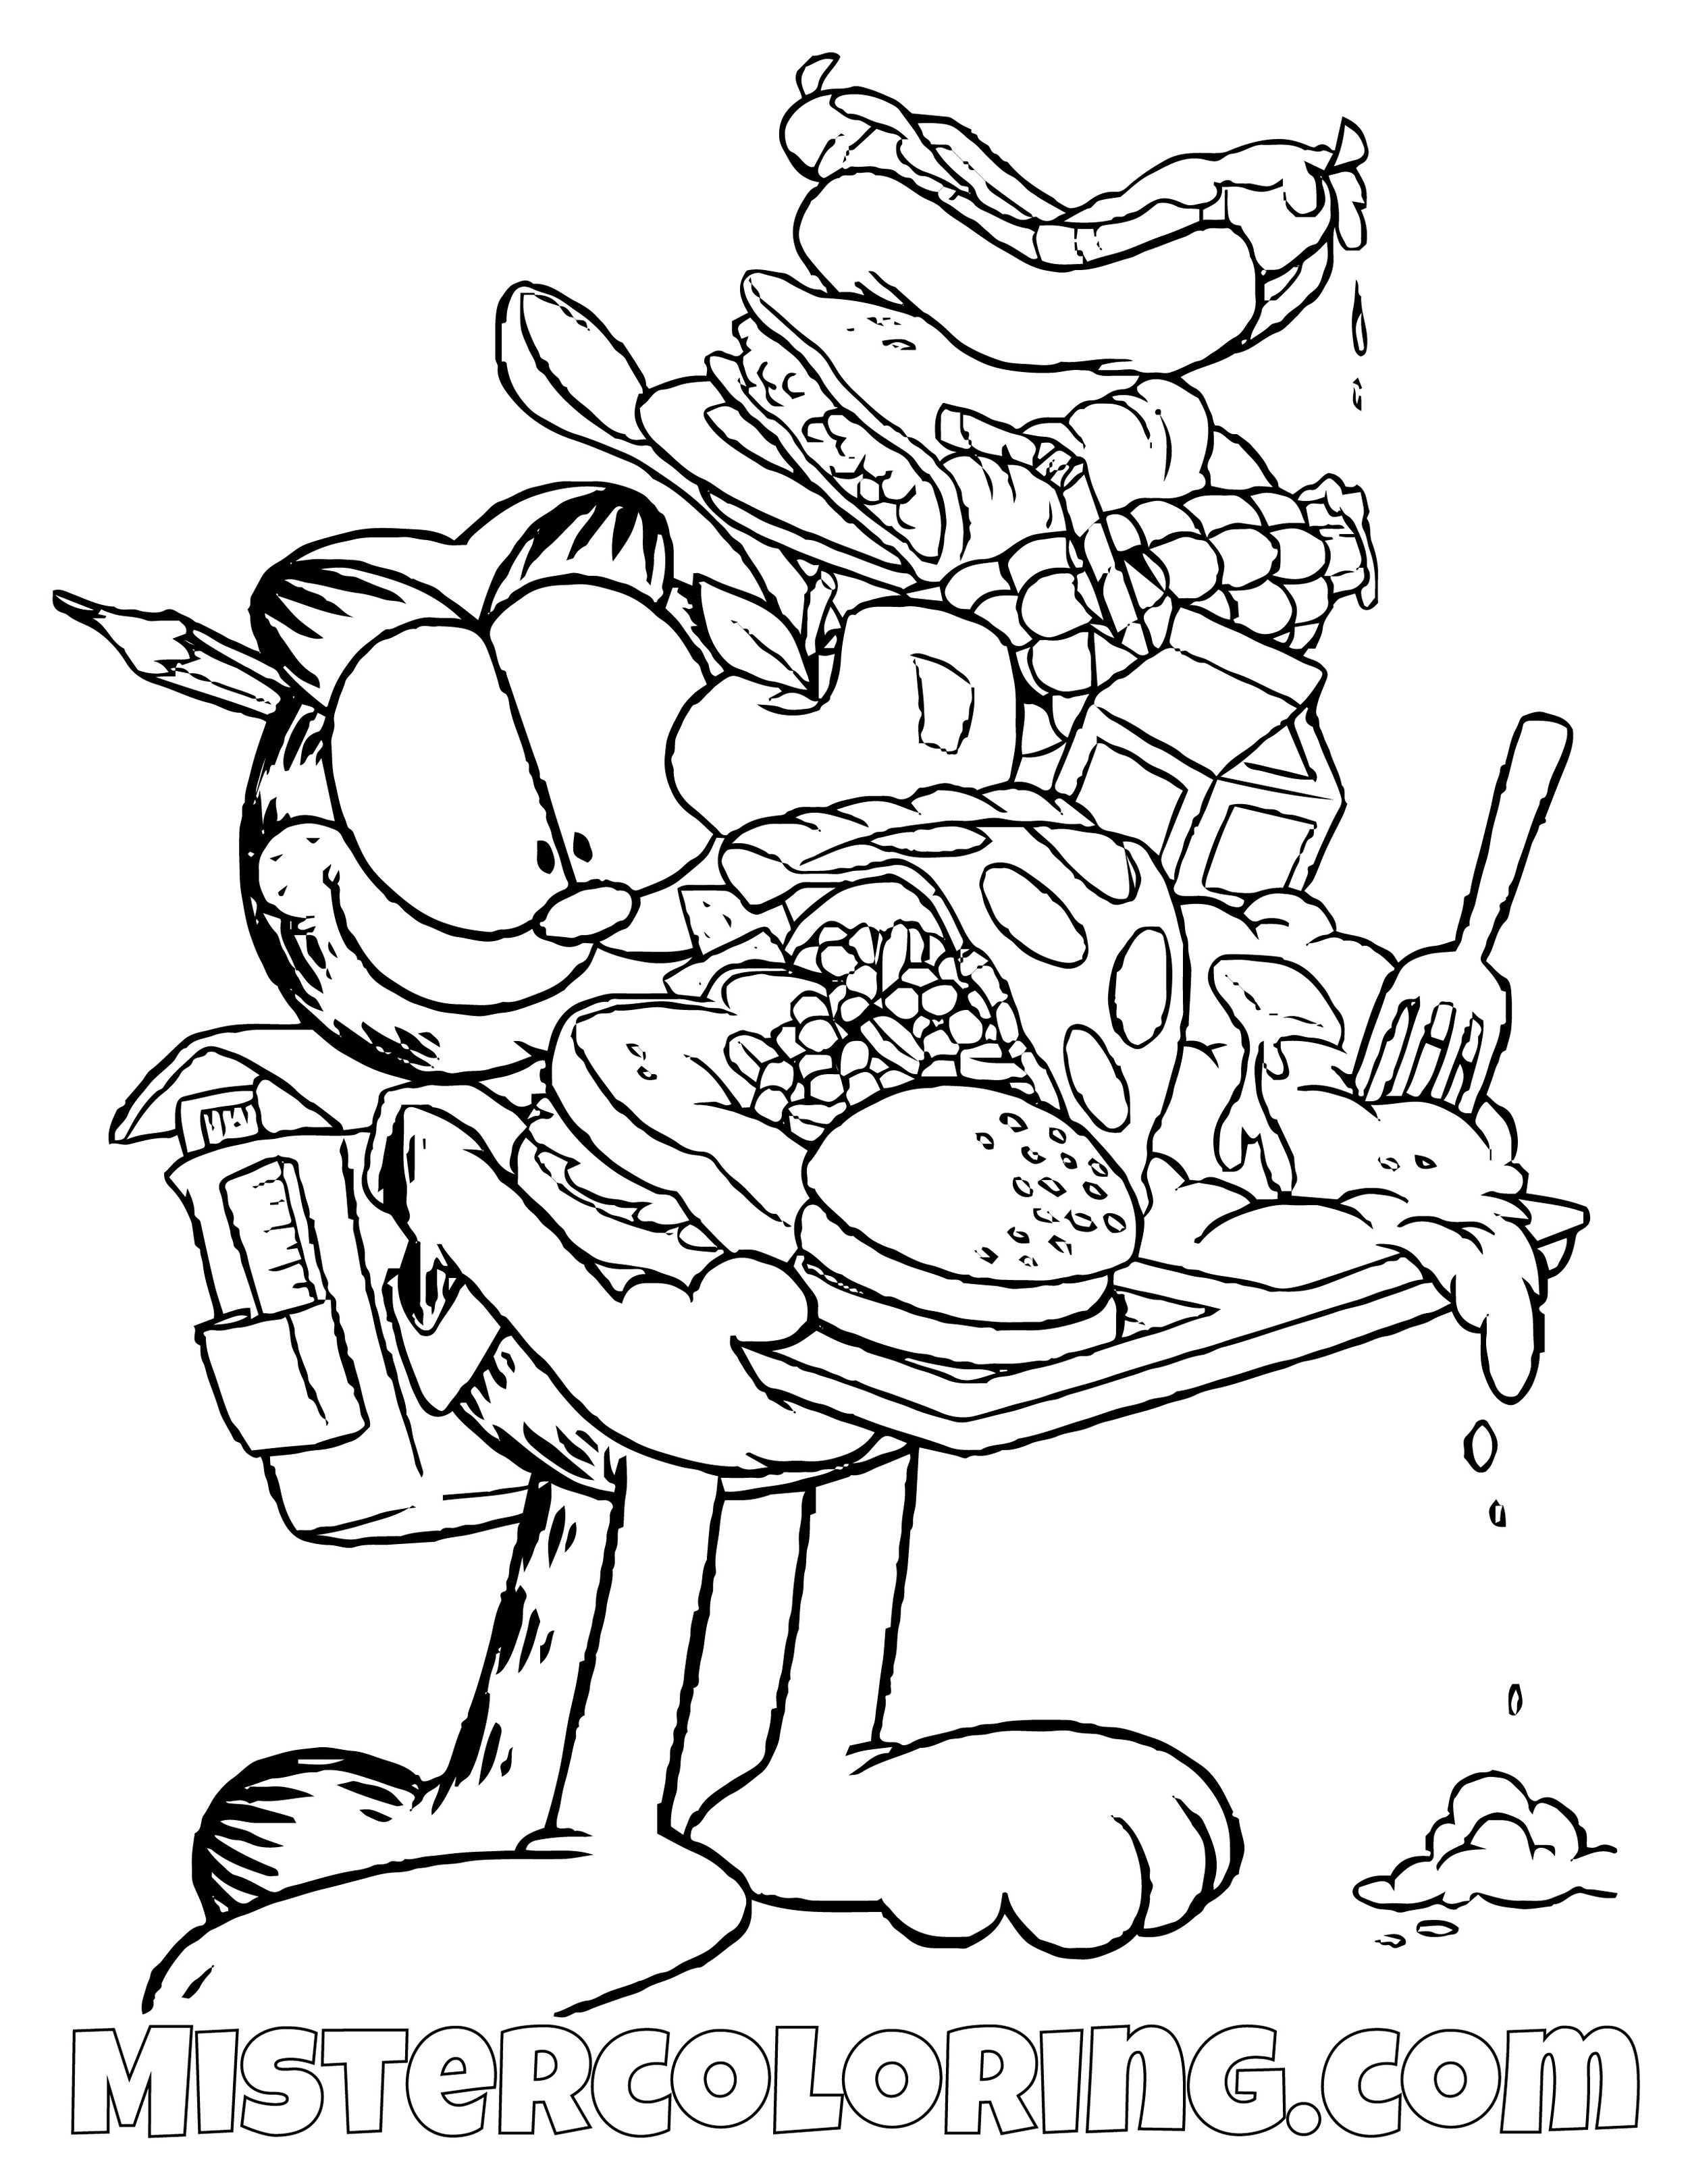 Garfield With A Tray Of Food Coloring Page